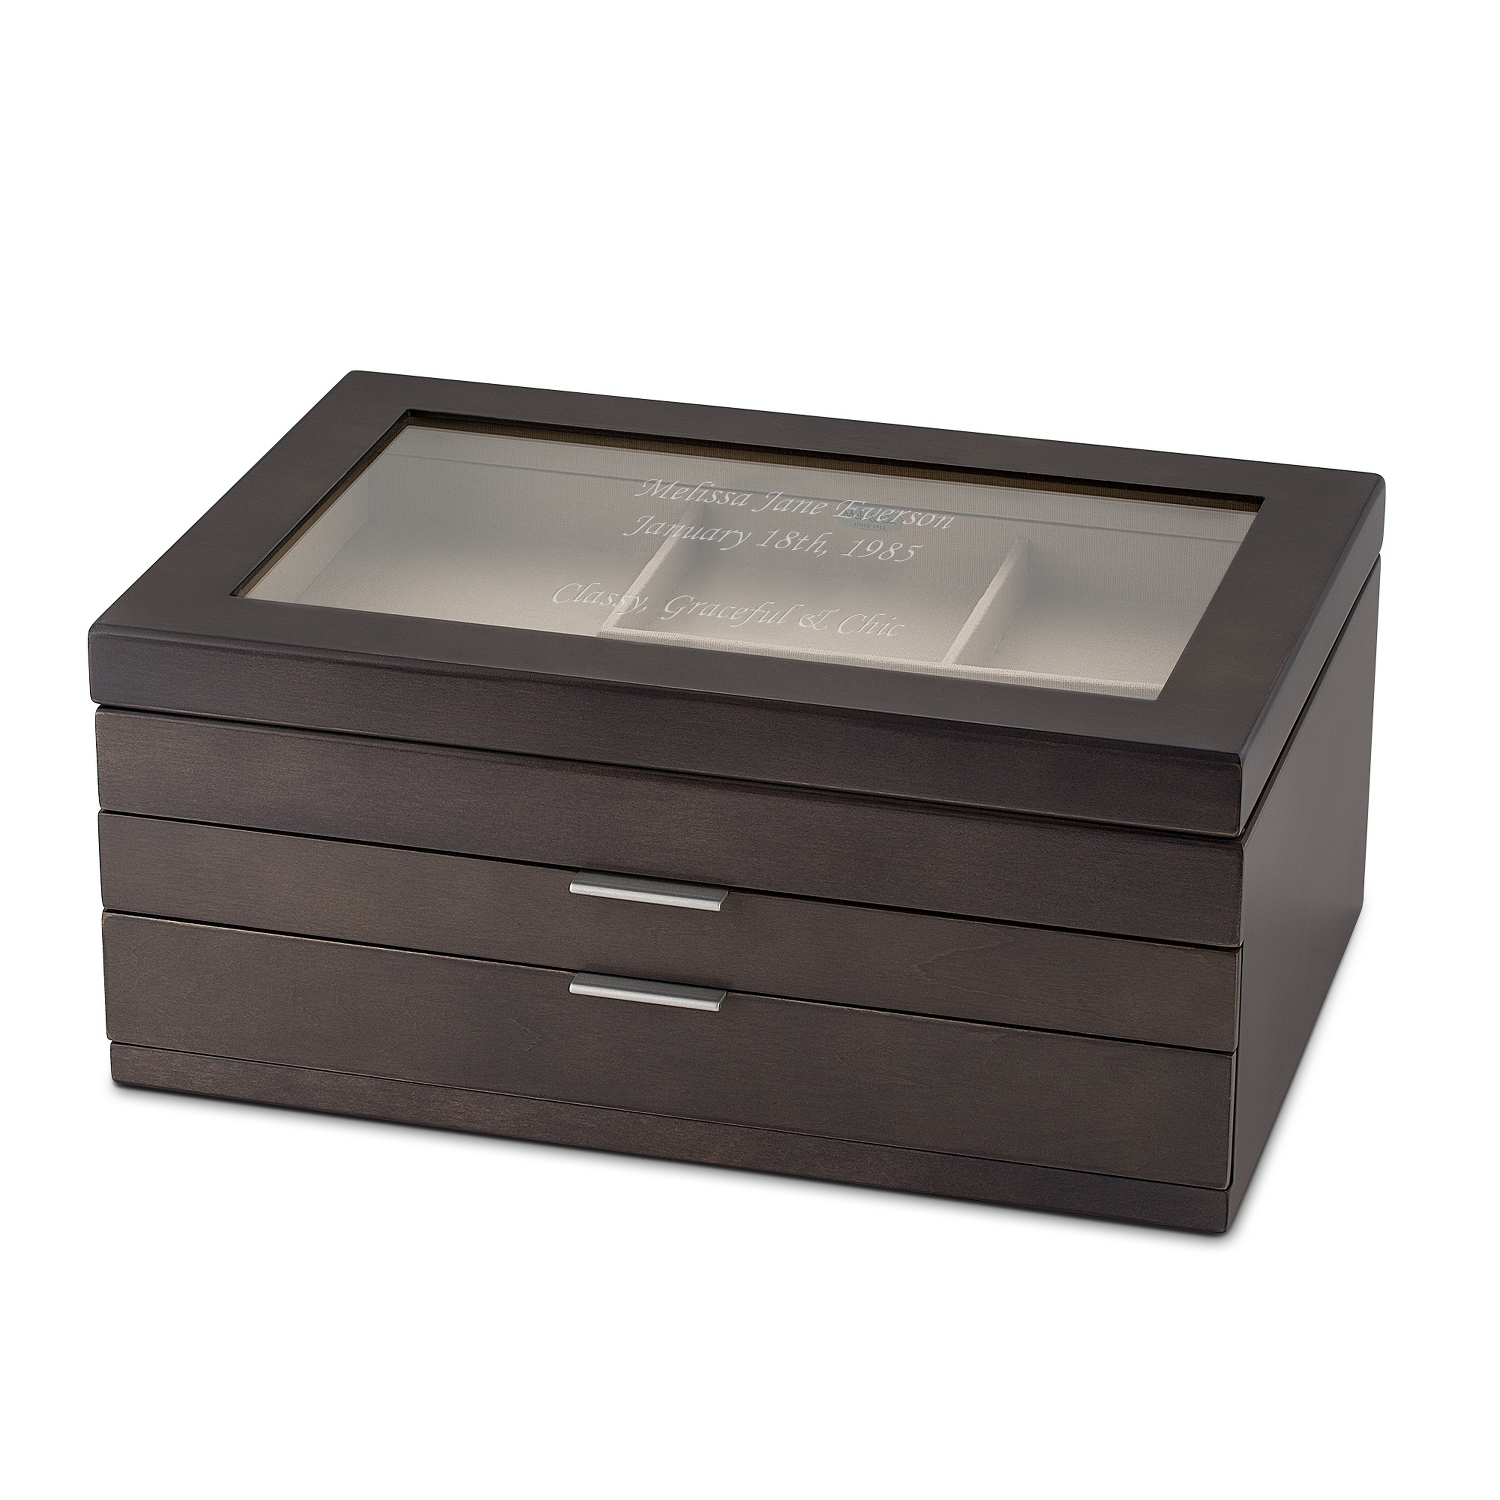 Mele and co misty oceanside grey finish wood jewelry box for Things remembered jewelry box